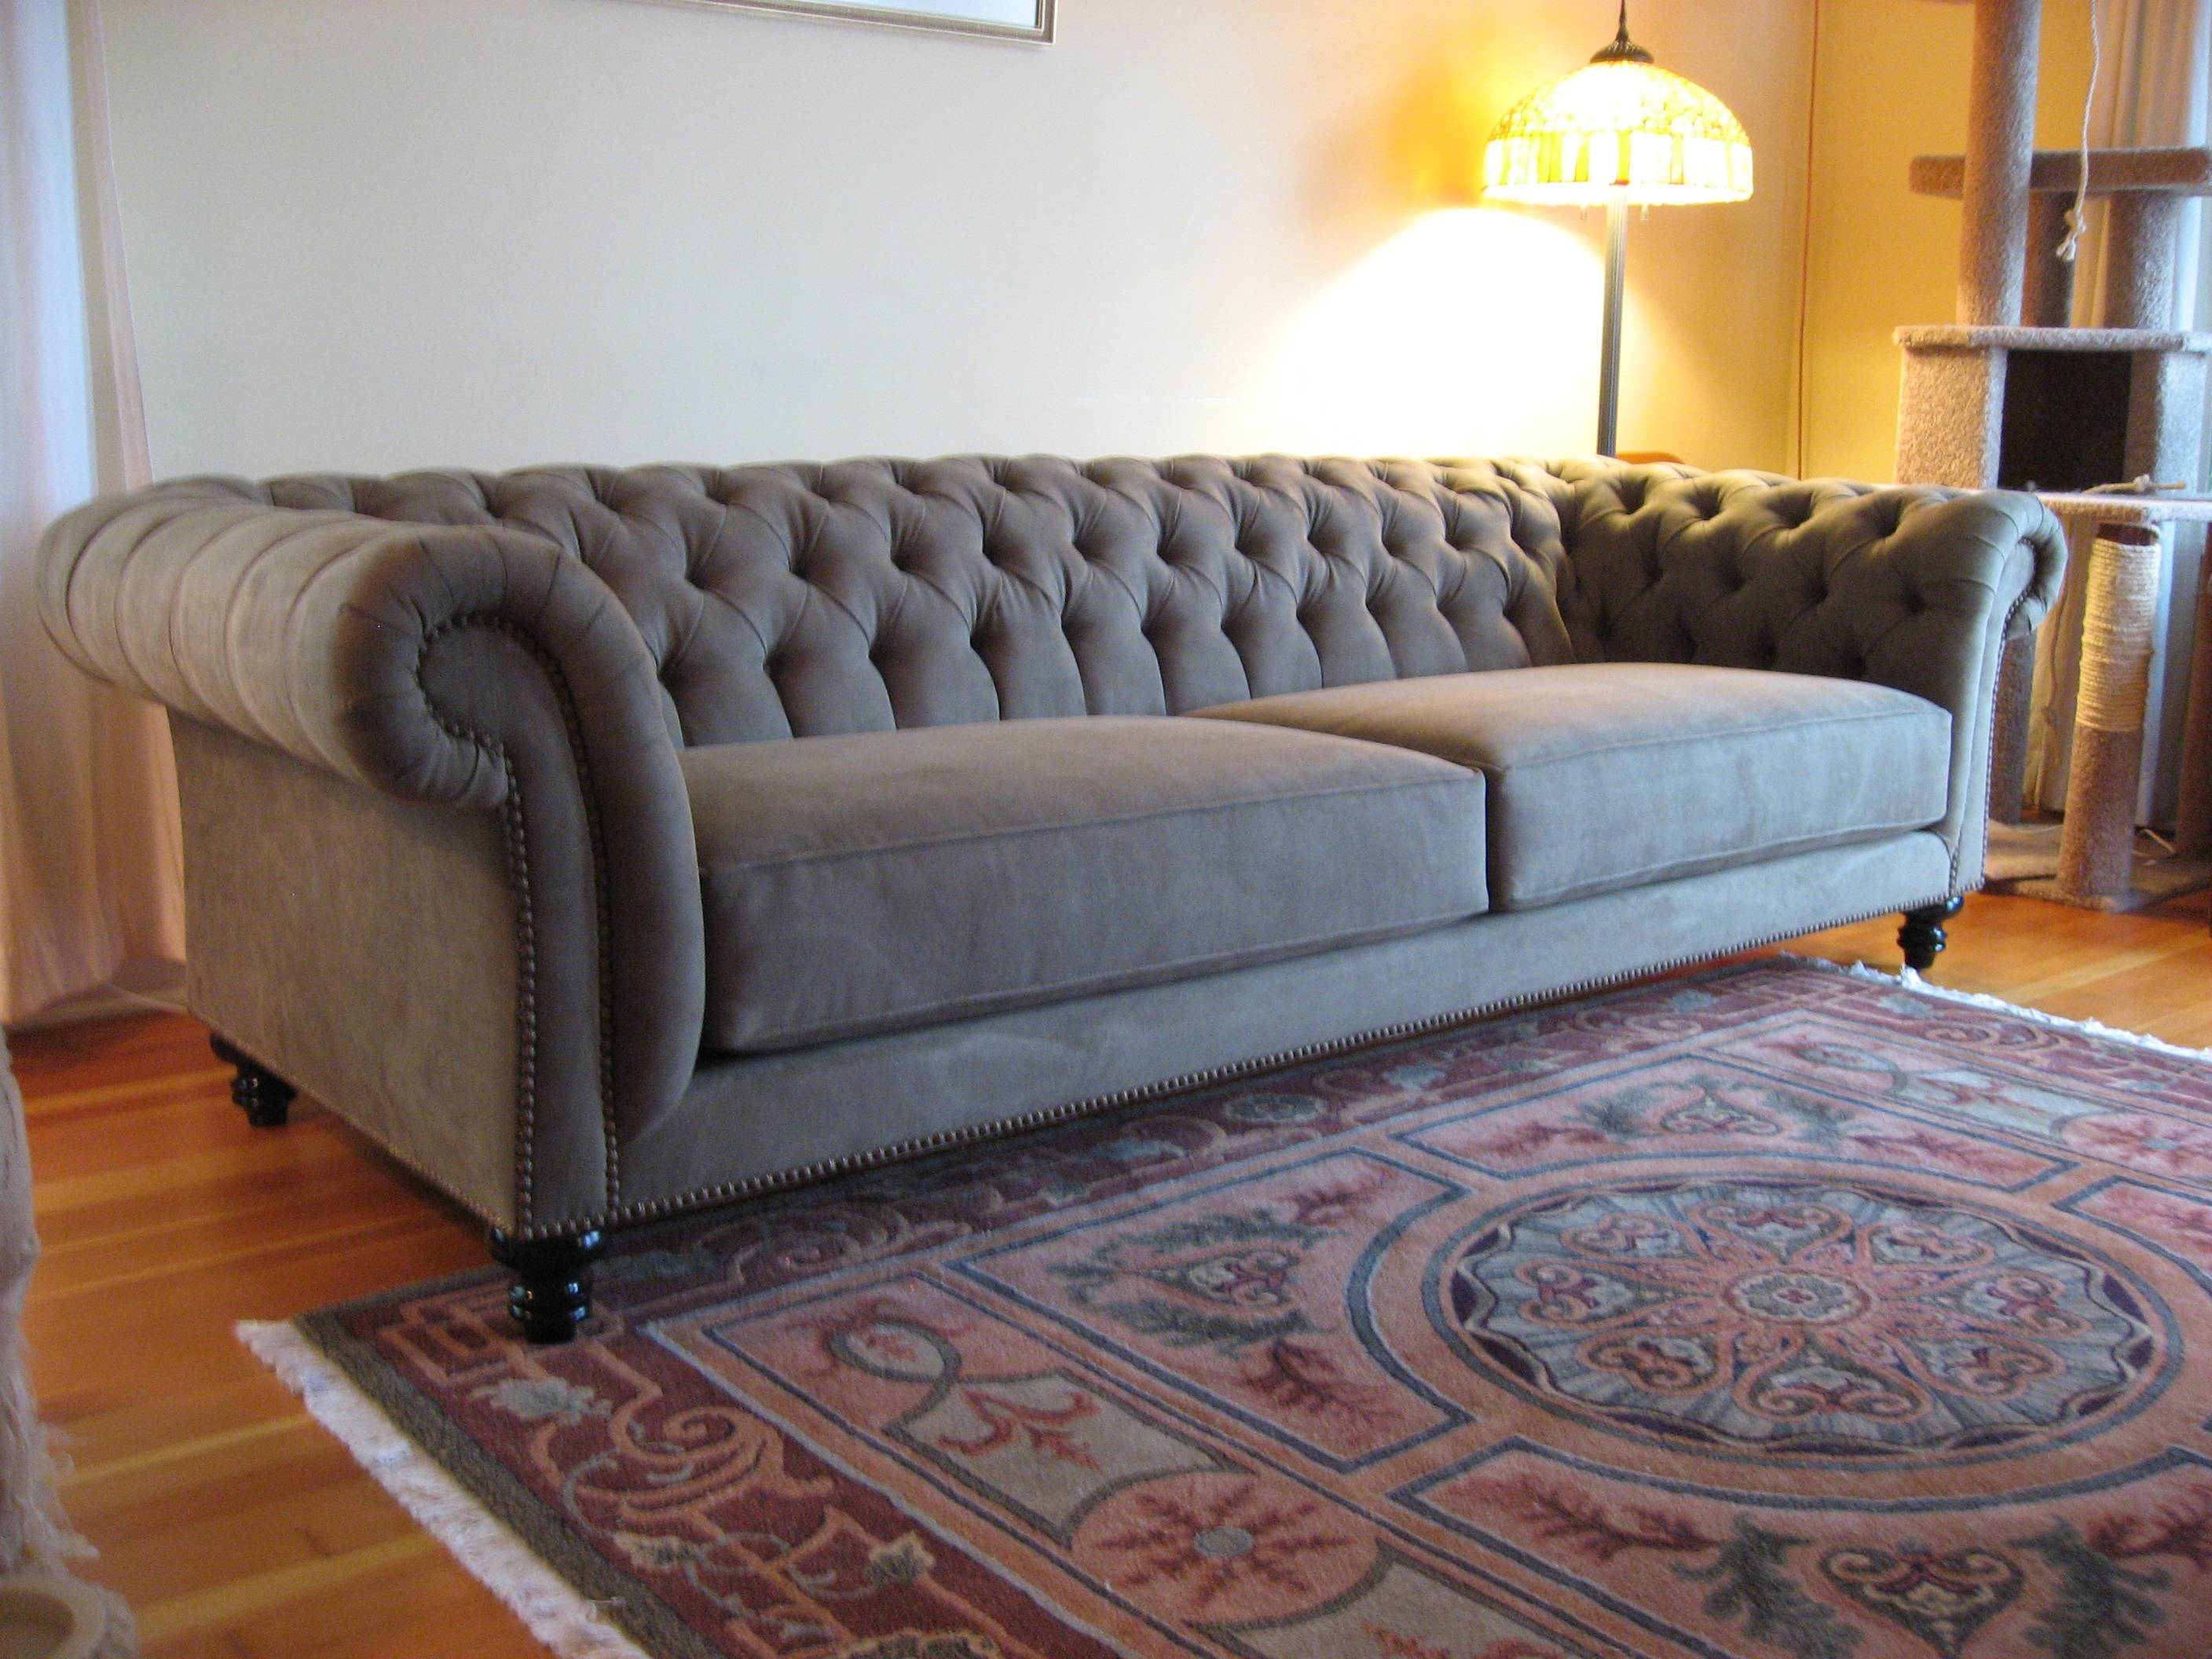 Tufted Chesterfield Sofa | Best Sofas Ideas - Sofascouch throughout Chesterfield Recliners (Image 27 of 30)